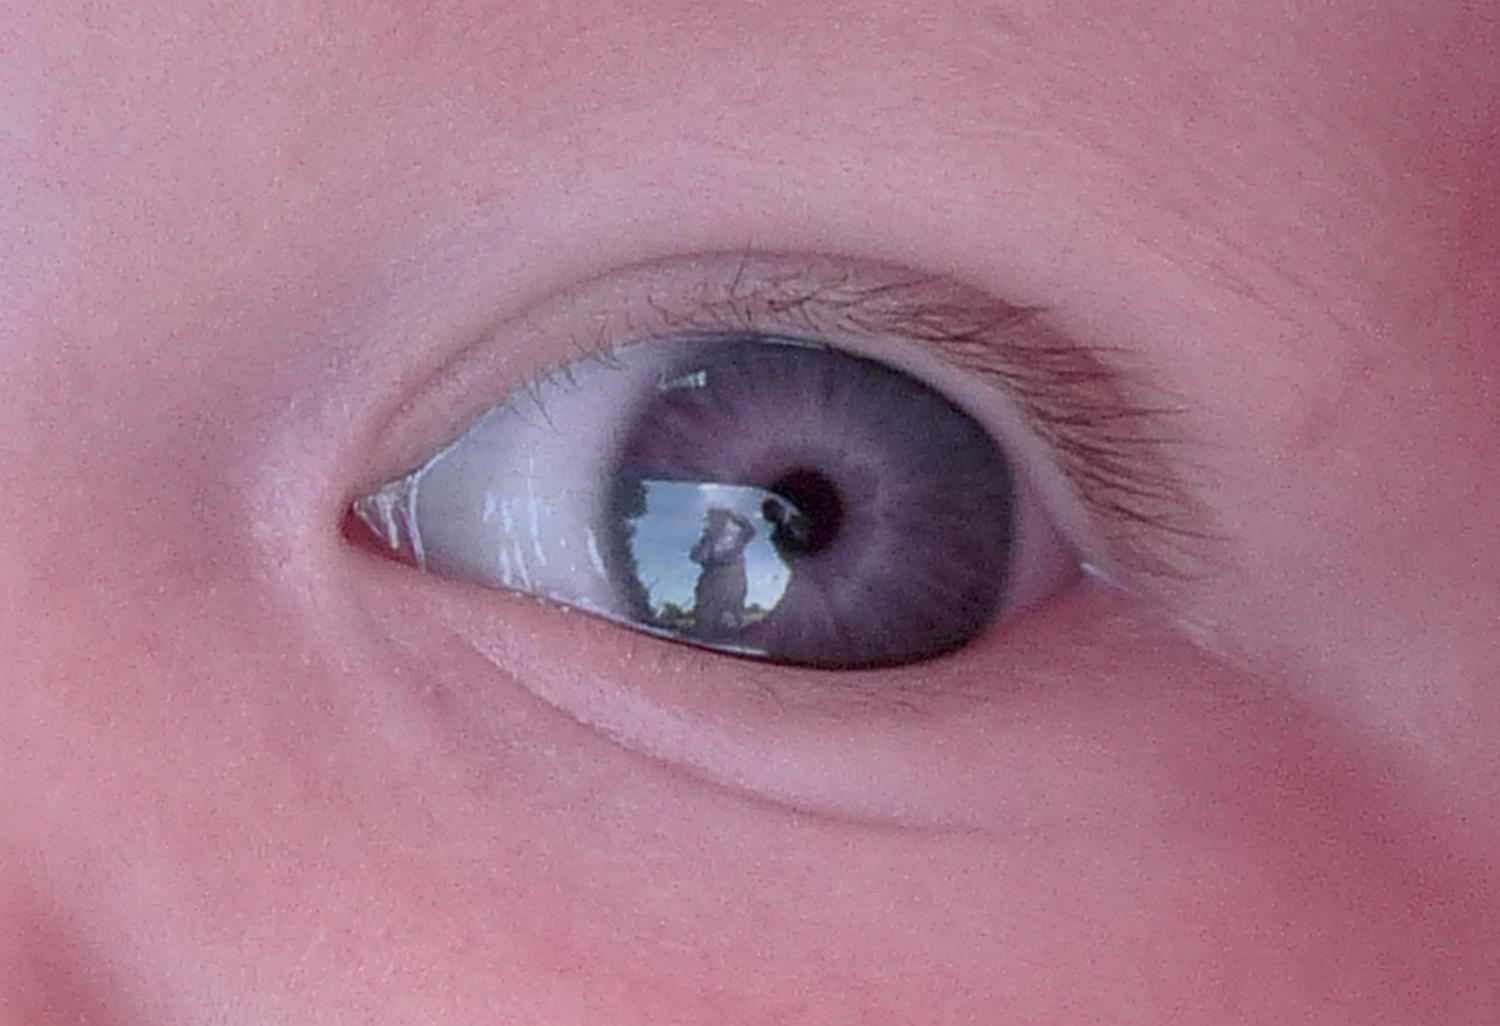 - Self portrait in a baby's eye - Panasonic DMC-FZ28 - 100% crop - Tony Karp, design, art, photography, techno-impressionist, techno-impressionism, aerial photography , drone , drones , dji , mavic pro , video , 3D printing - Books -